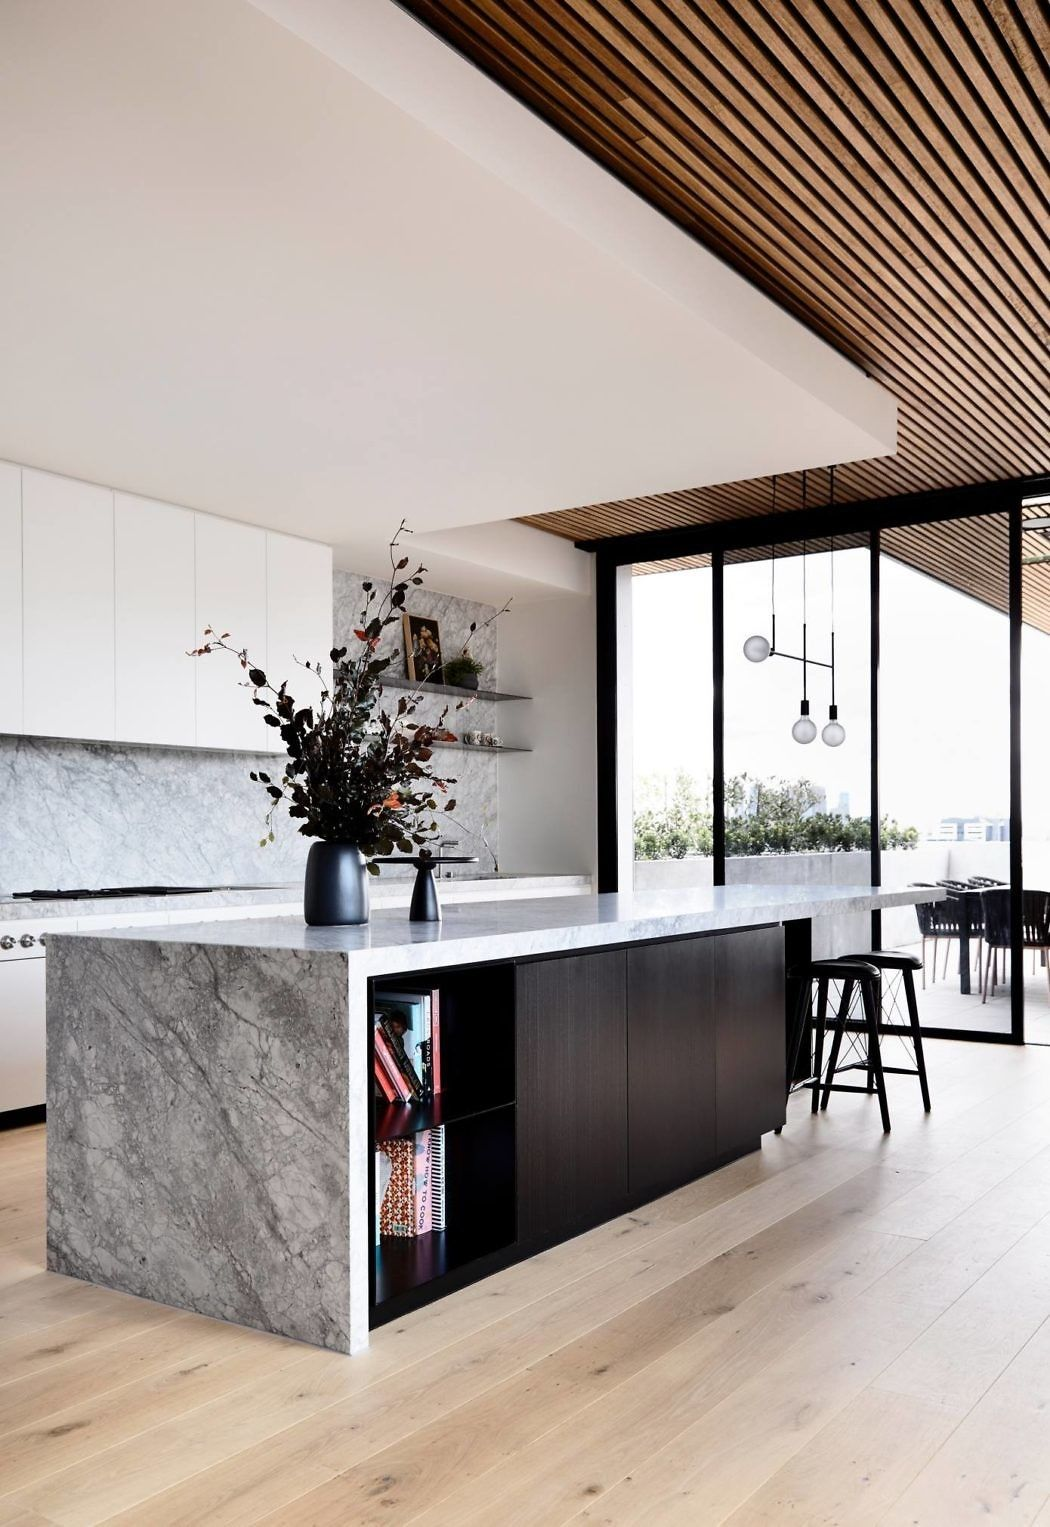 Remodel kitchen island with waterfall edge with open book